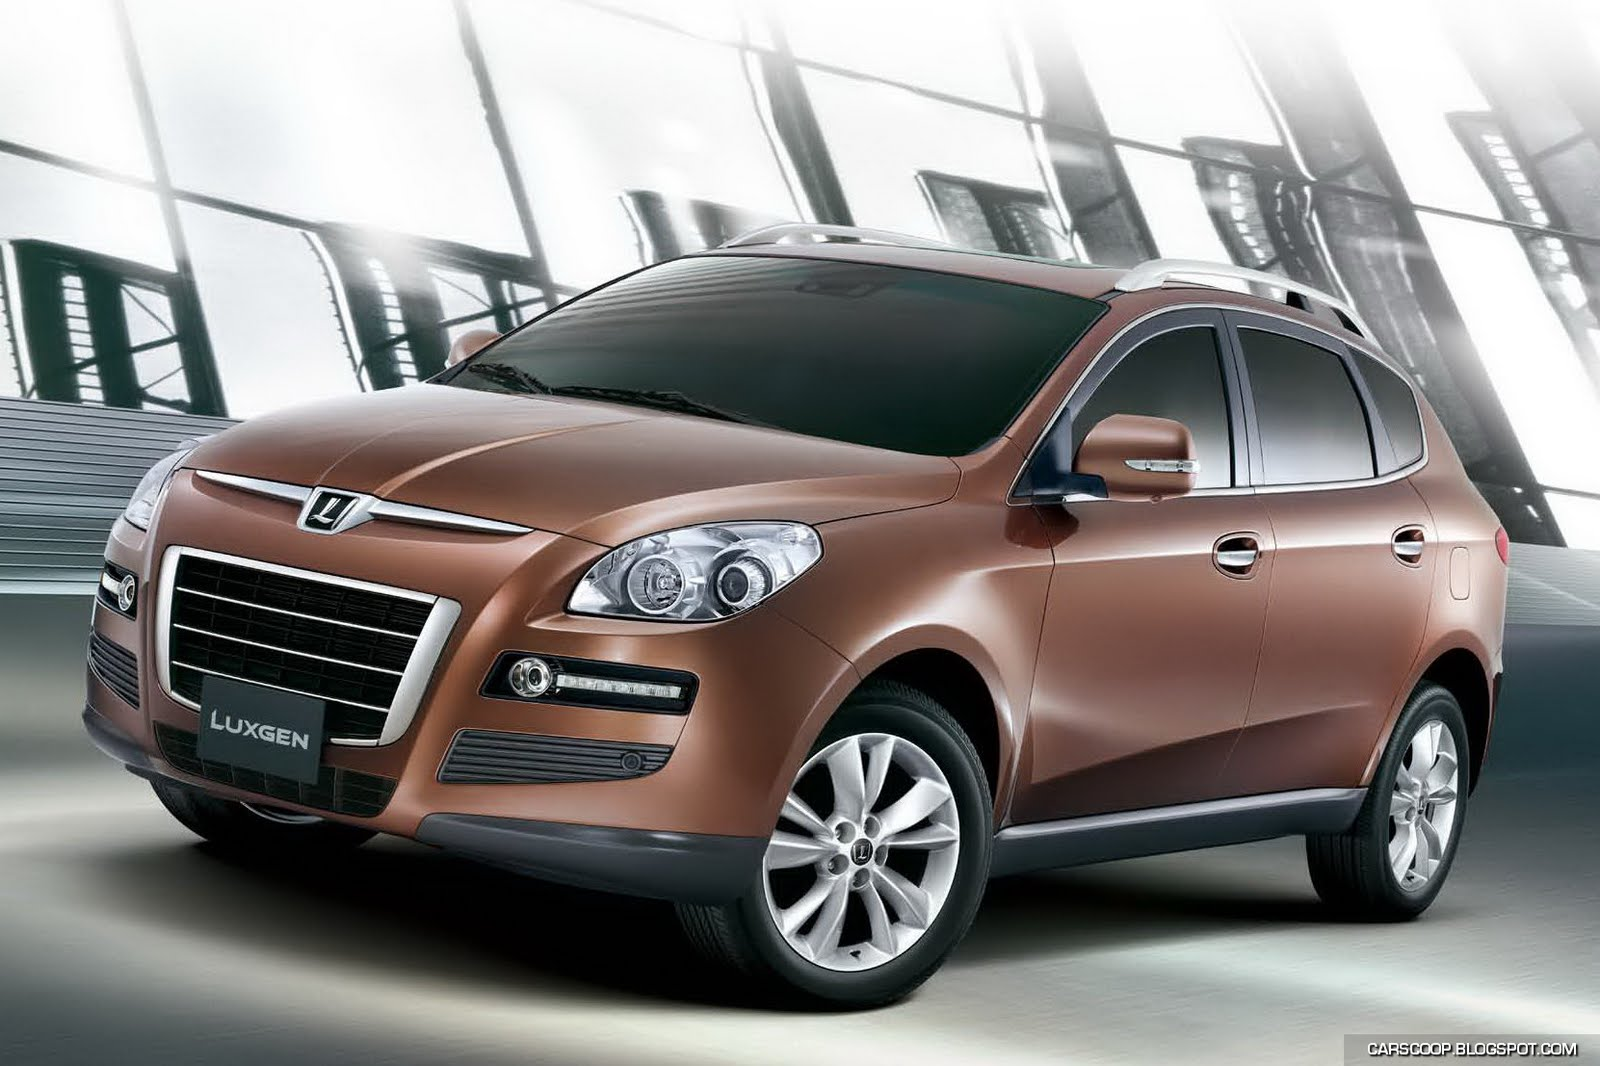 Taiwan's First Car Brand Launches Luxgen7 SUV Could Go On